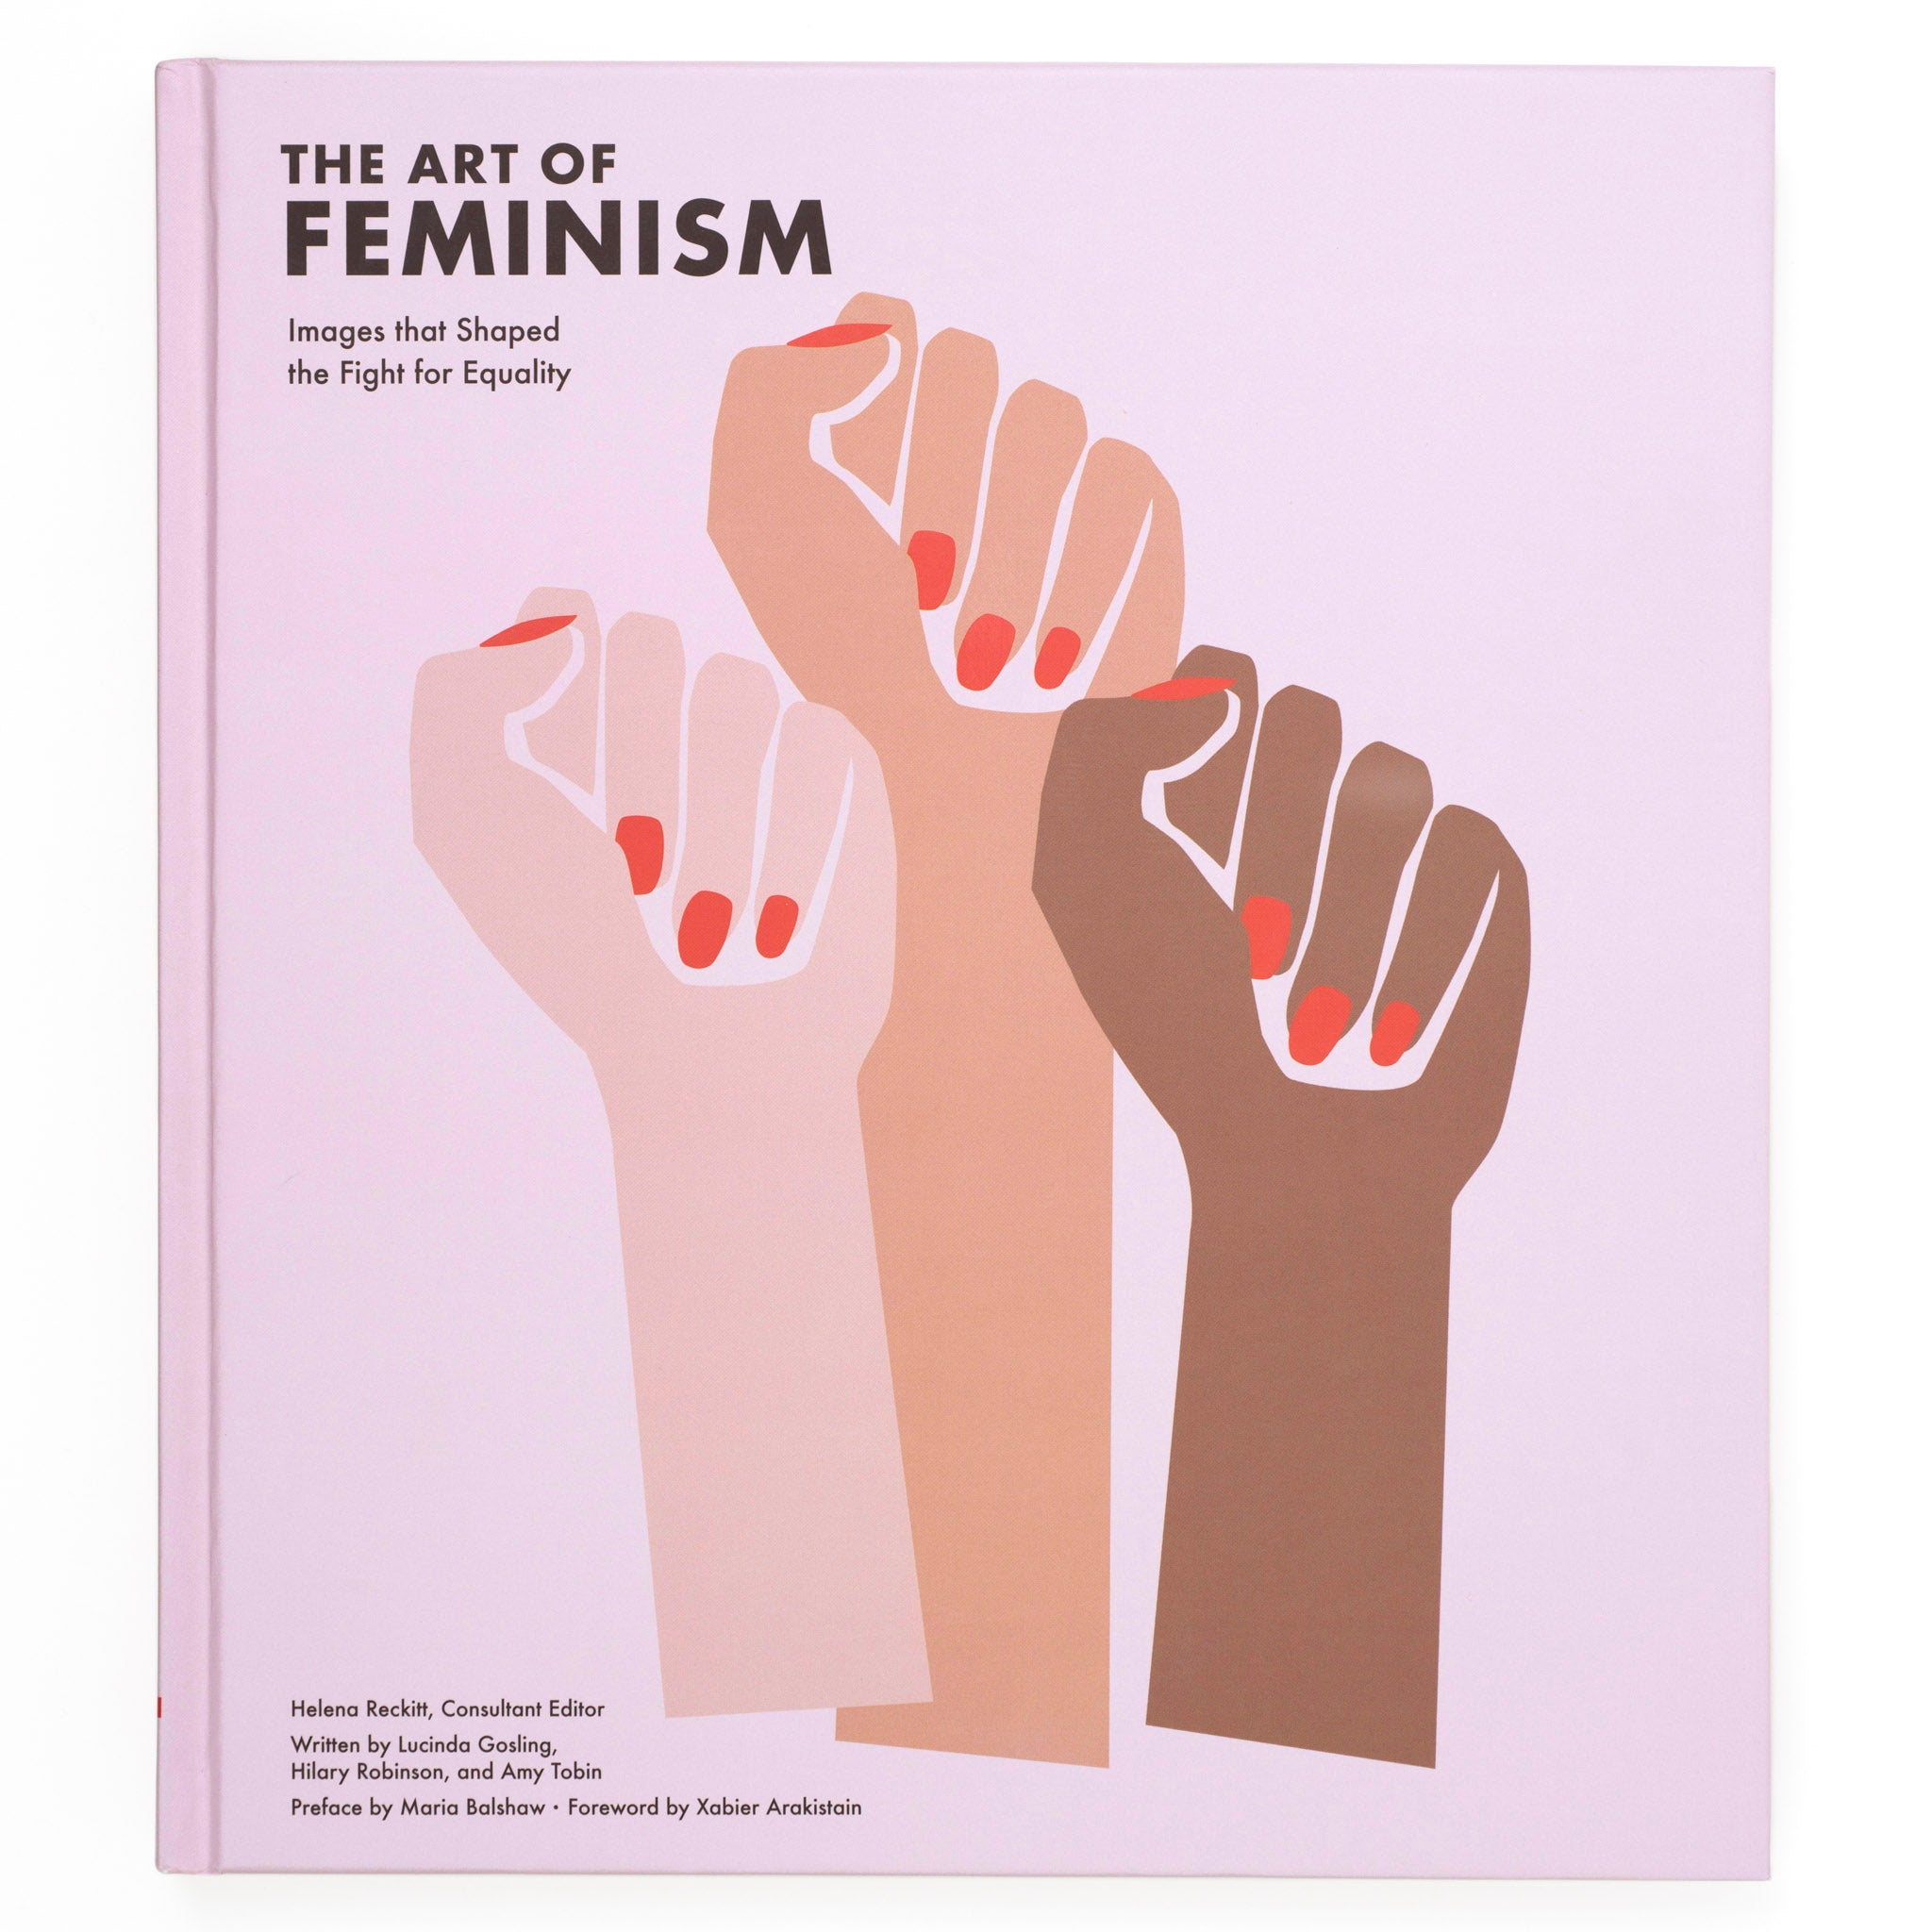 The Art of Feminism Image